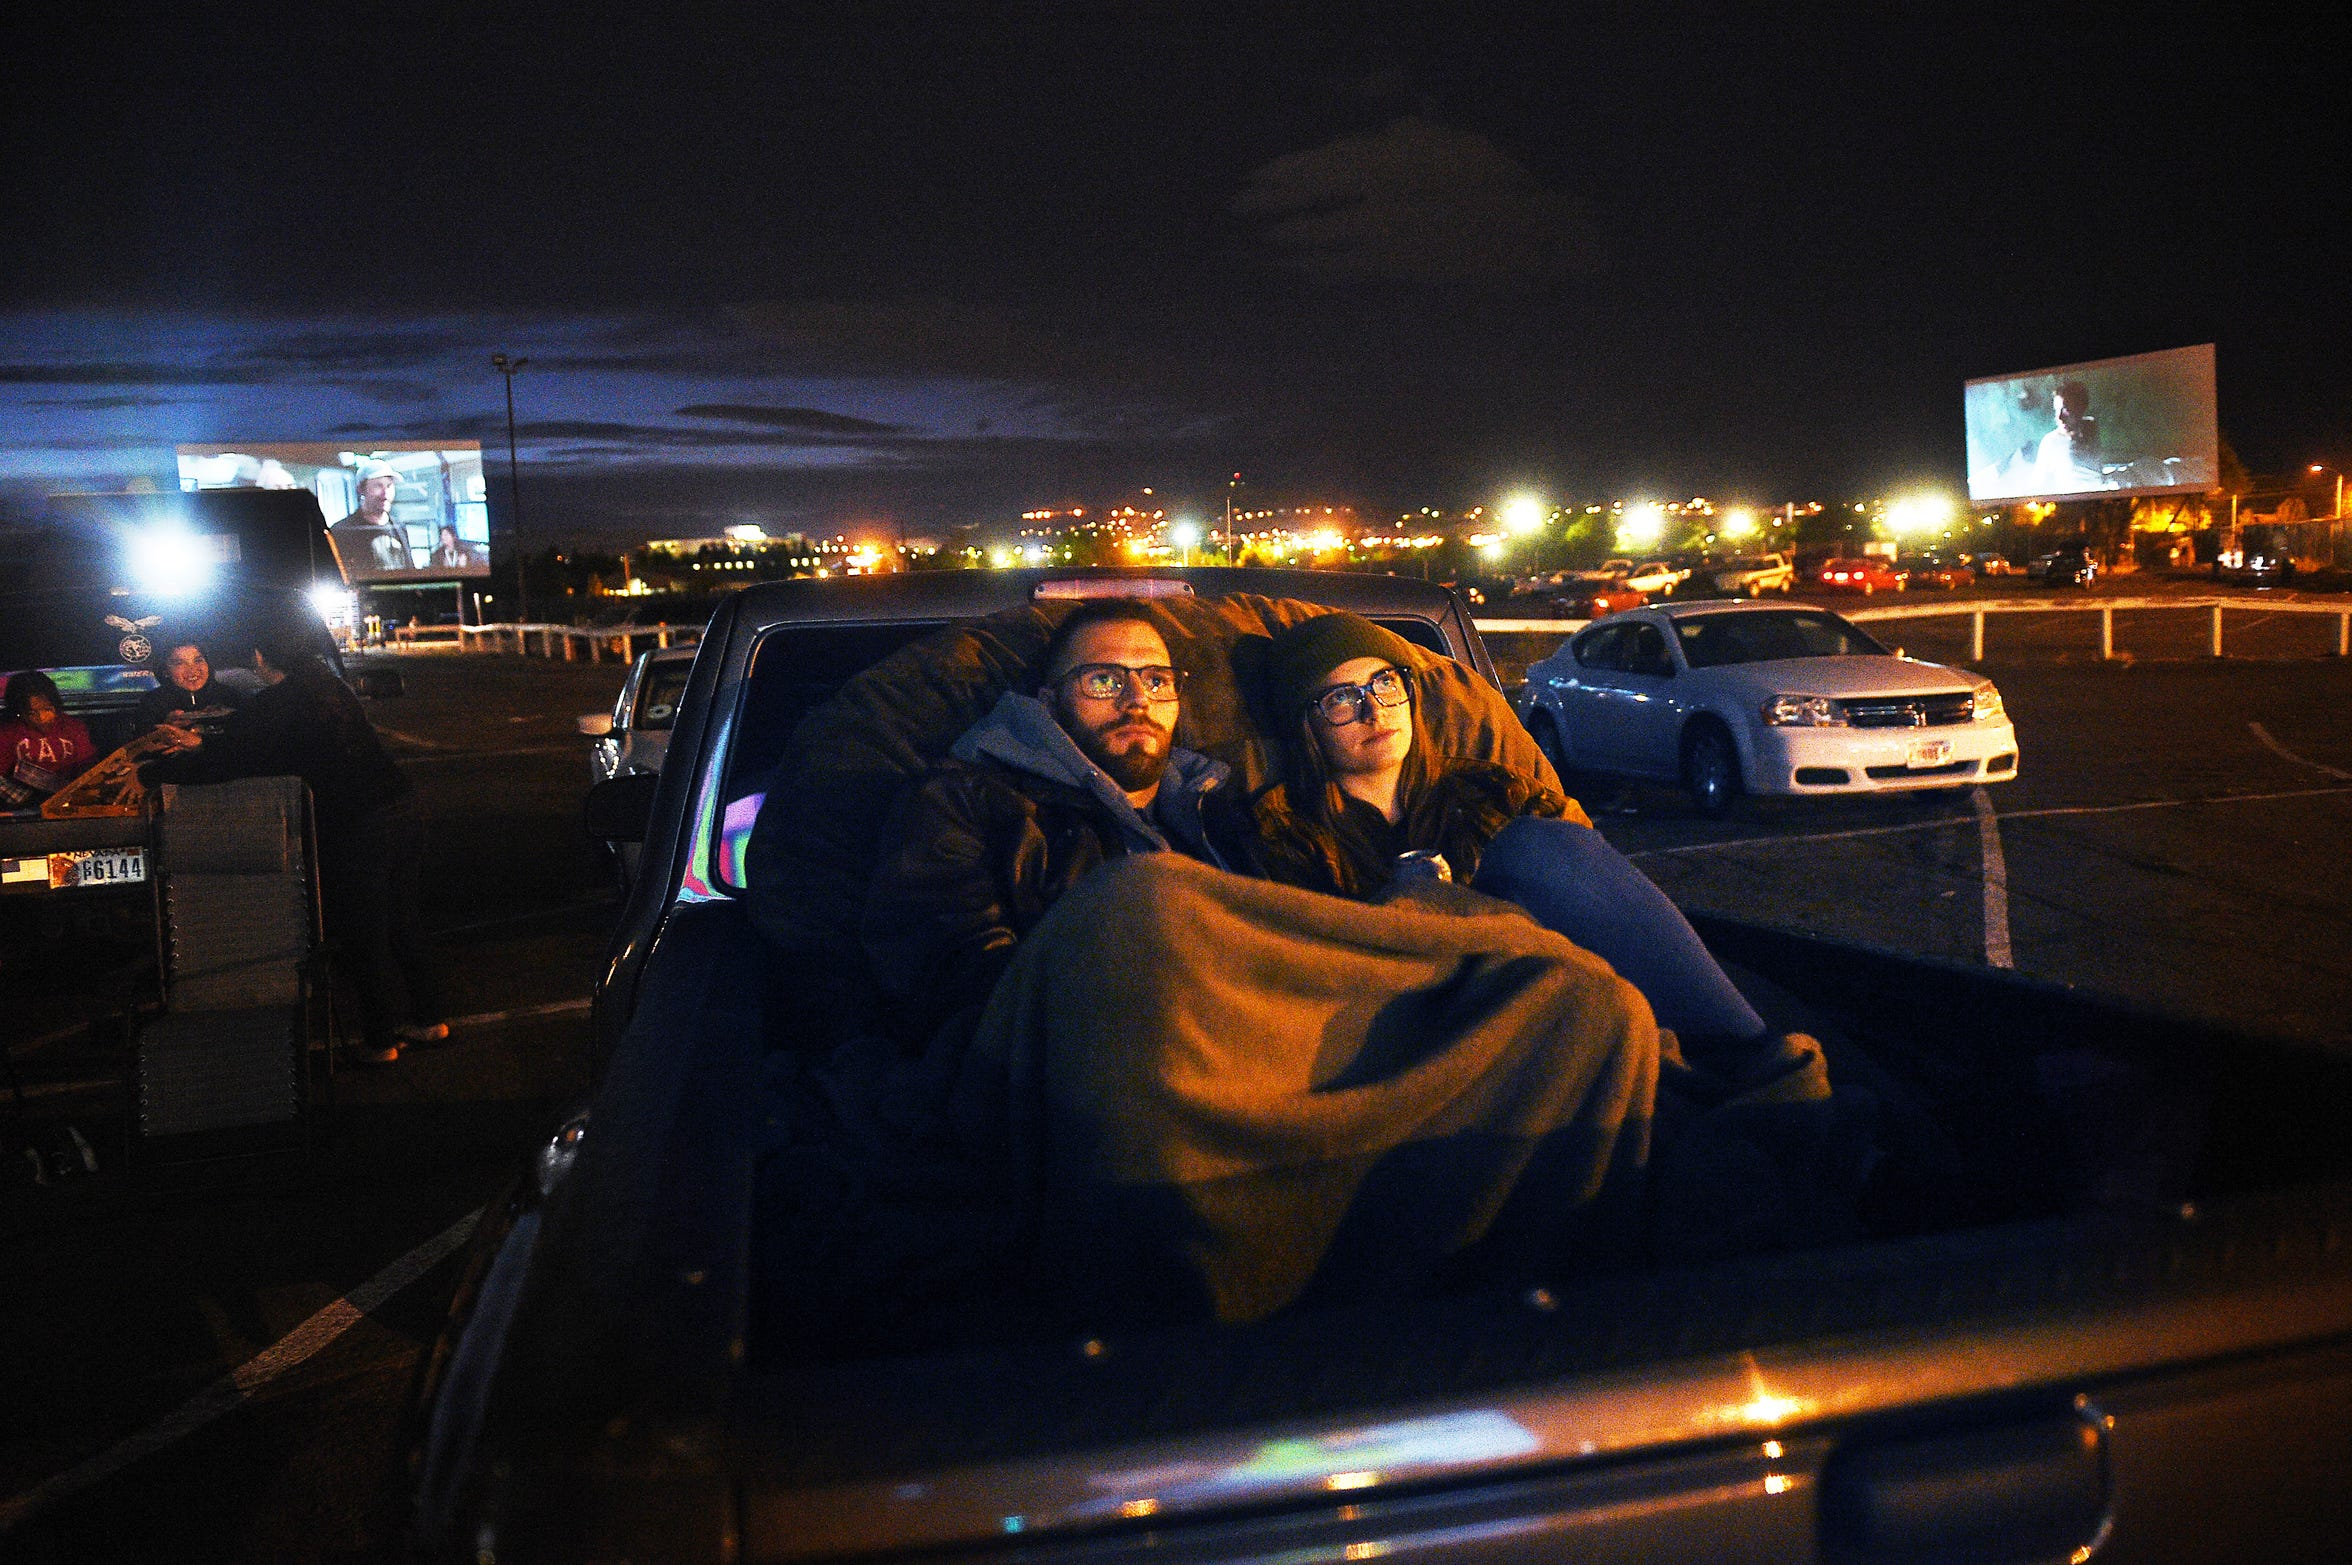 Taylor Sexton and Caroline McDermaid sit comfortably on a bean bag in their trucks' bed while watching the new Predator film at the West Wind El Rancho Drive-In 4 movie theater in Sparks on Sept. 14, 2018.